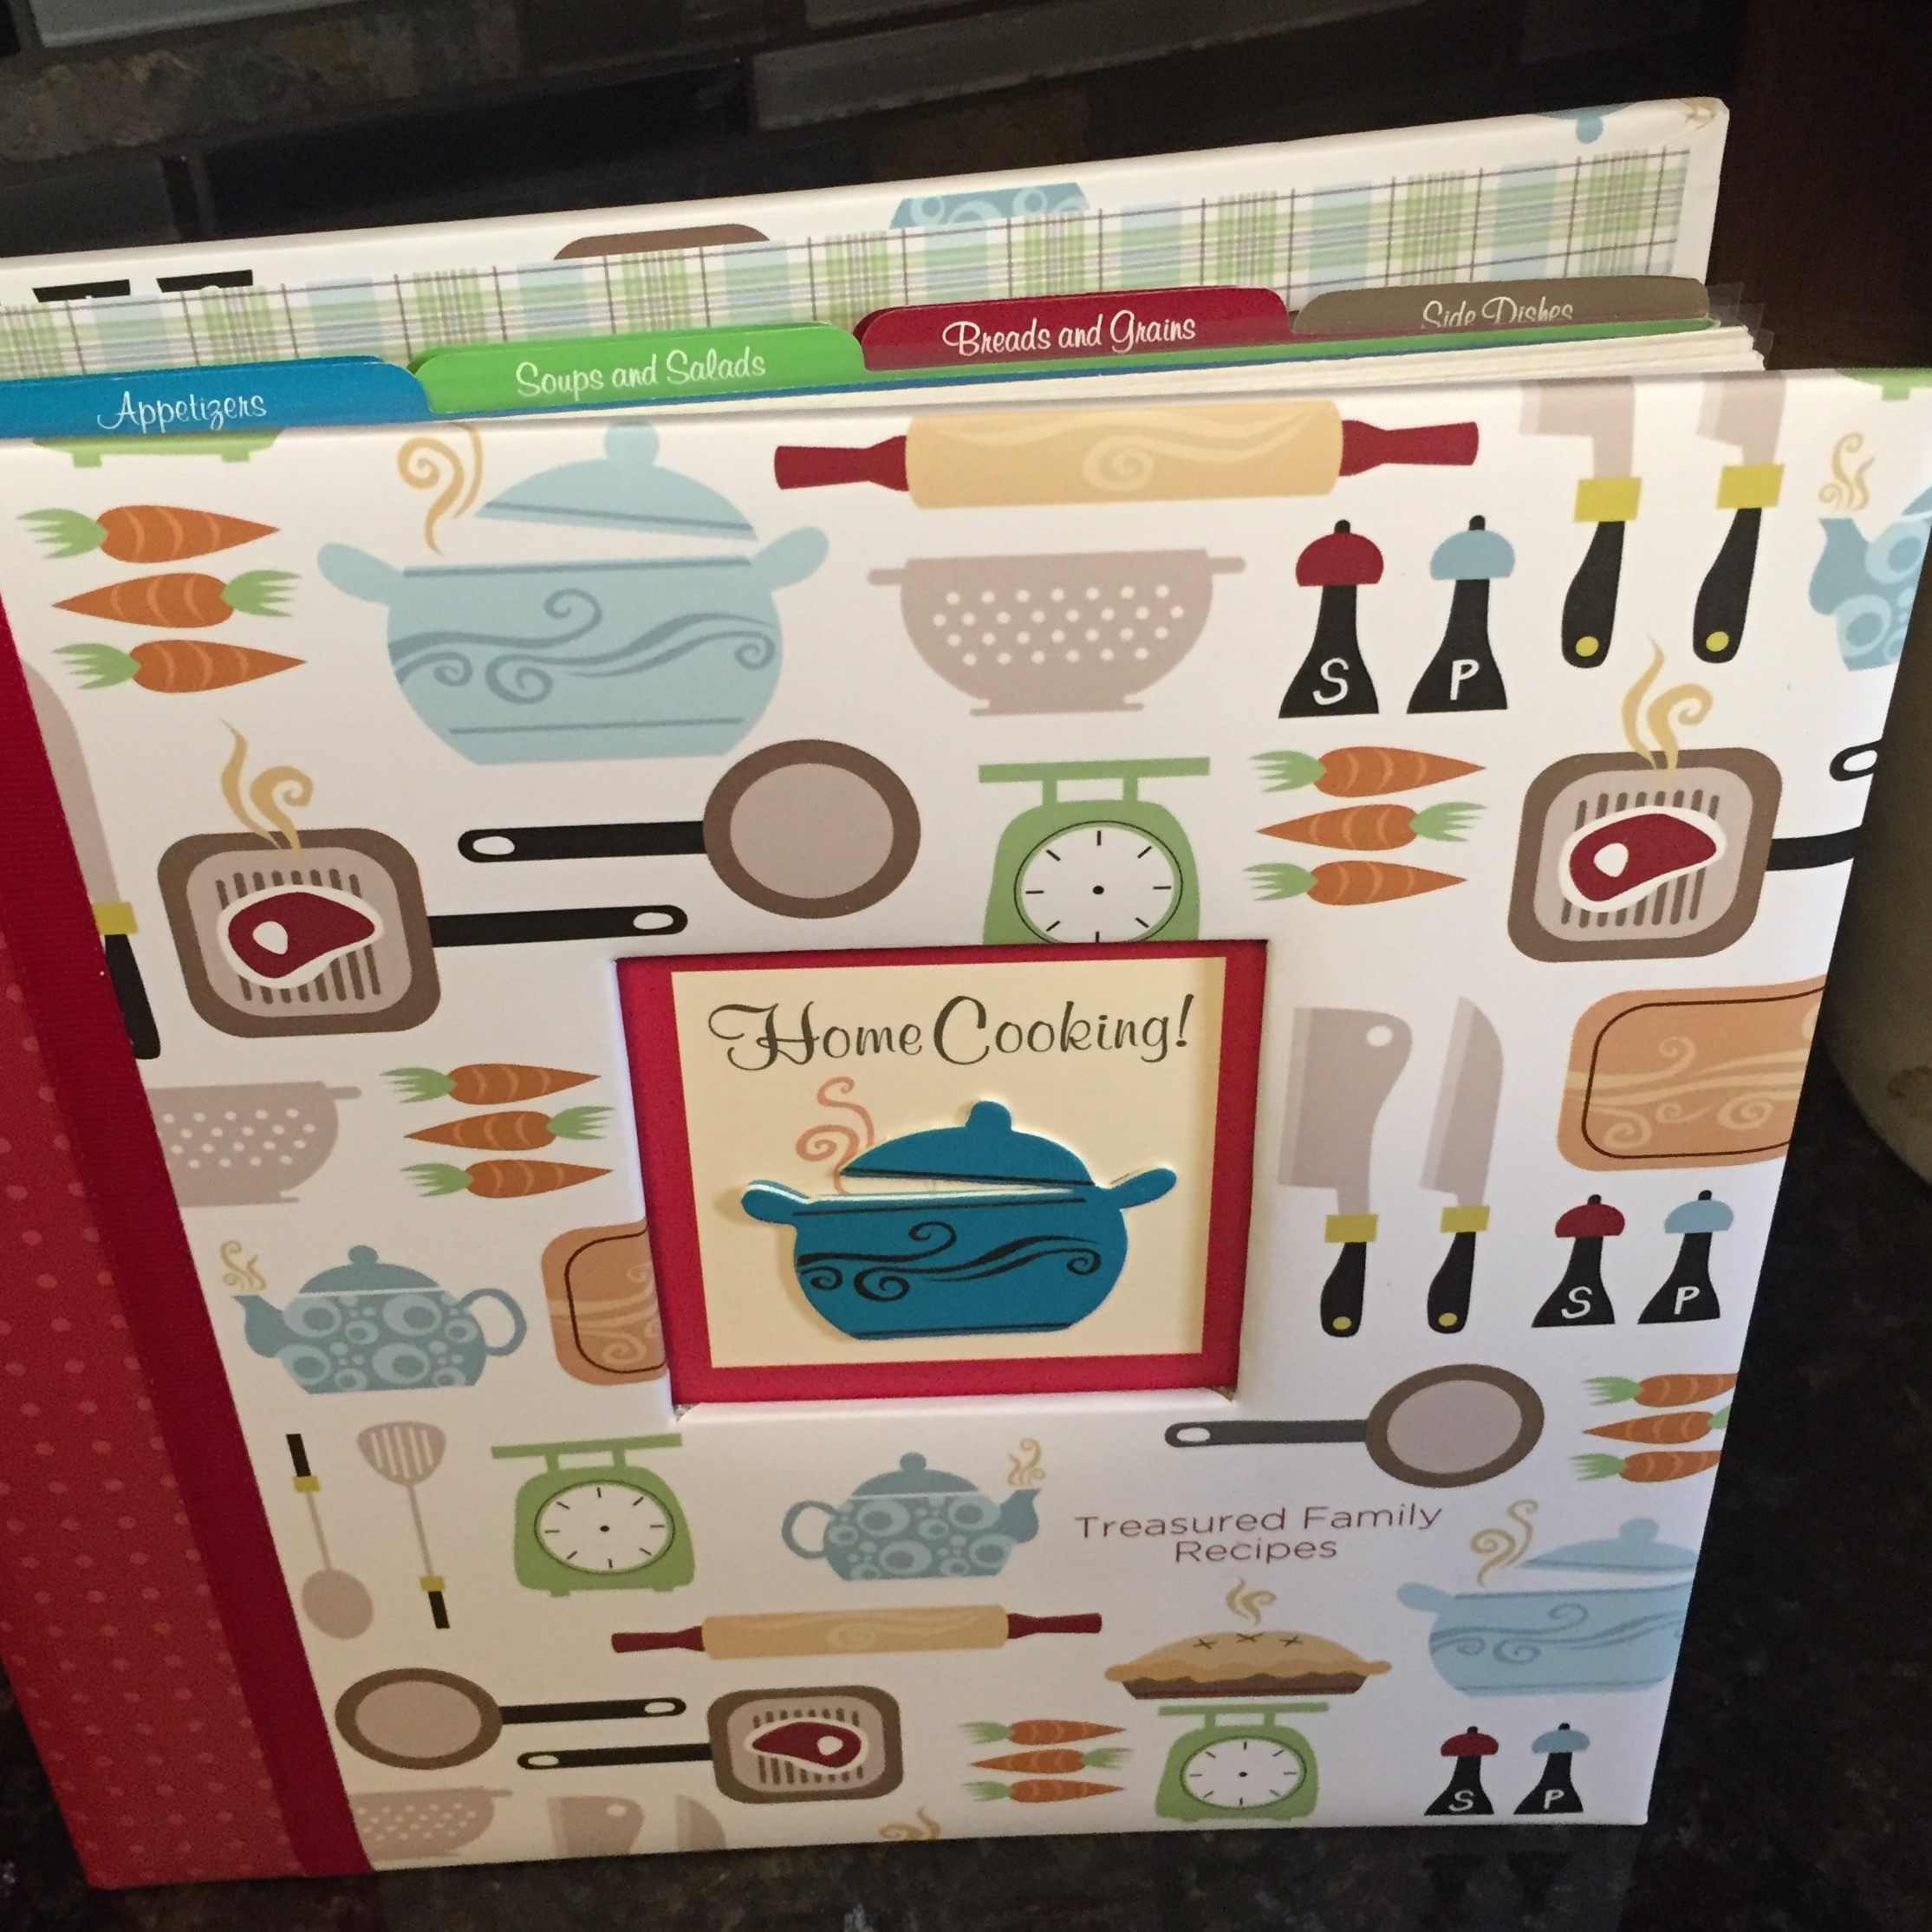 This binder holds all of those recipes inherited from your family and friends, assuring that those treasured dishes will be made long after you're gone.